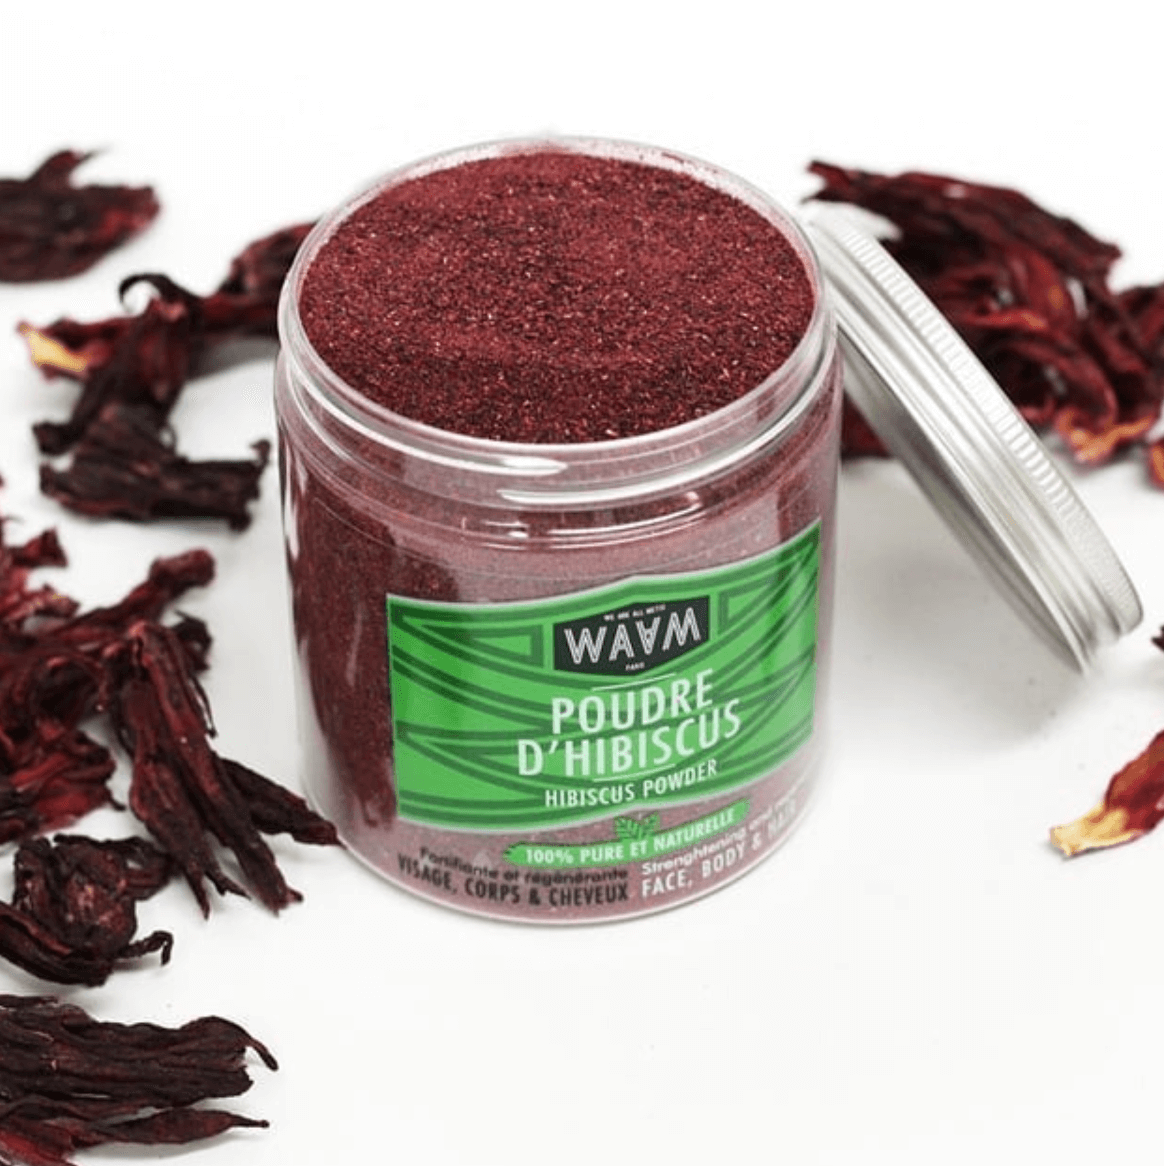 POUDRE D'HIBISCUS - WAAM